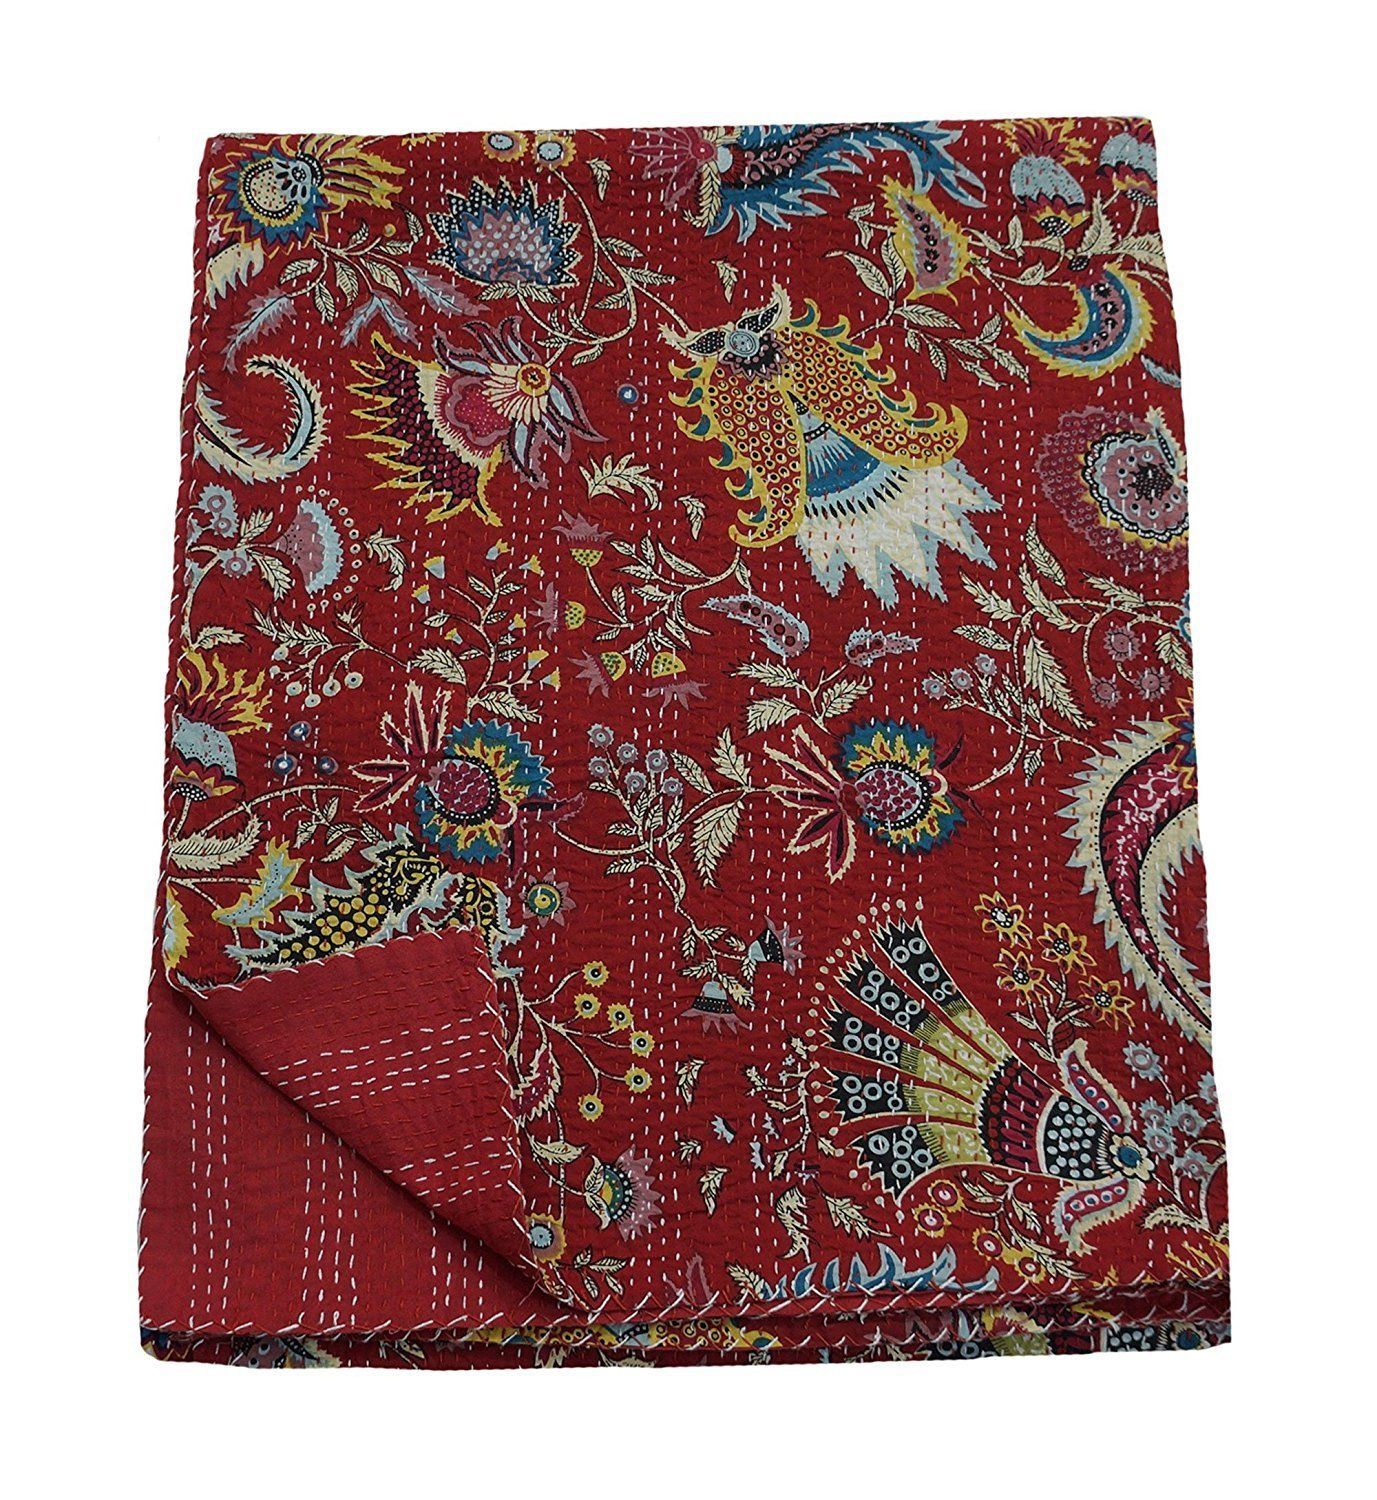 Red crown print kantha quilt Handmade Kantha Quilt  Cotton Traditional Kantha Quilt Kantha Blanket Bed Cover Bedspread Bohemian Bedding